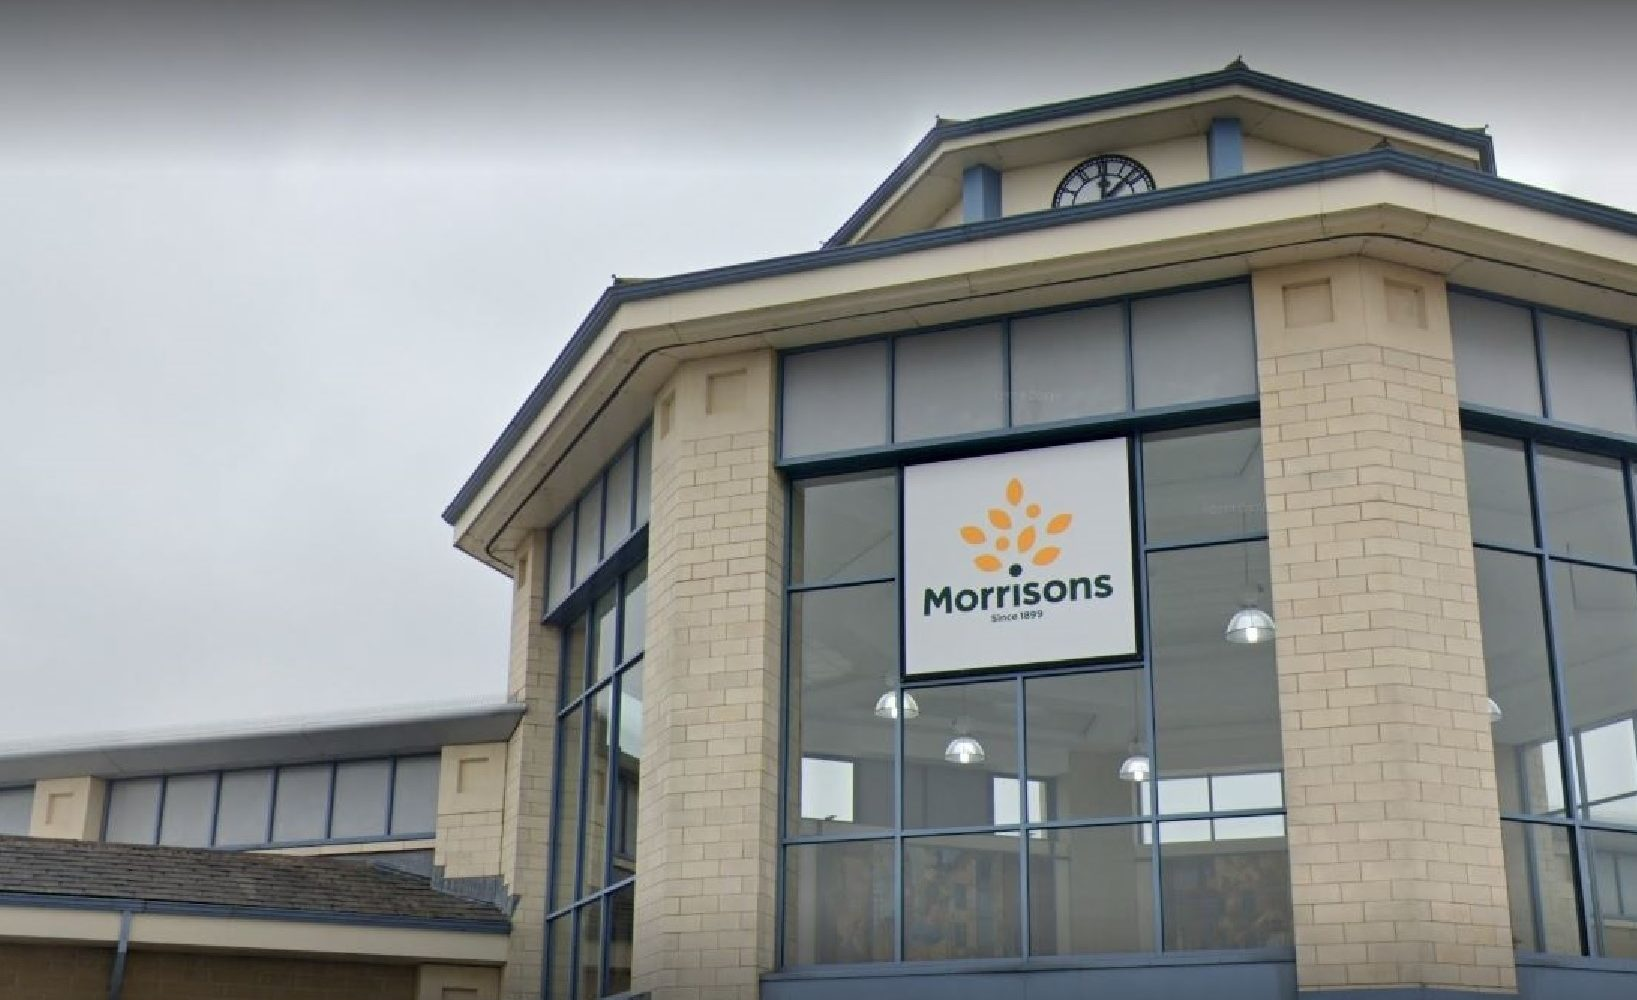 Man questions face mask policy at Morrisons in…